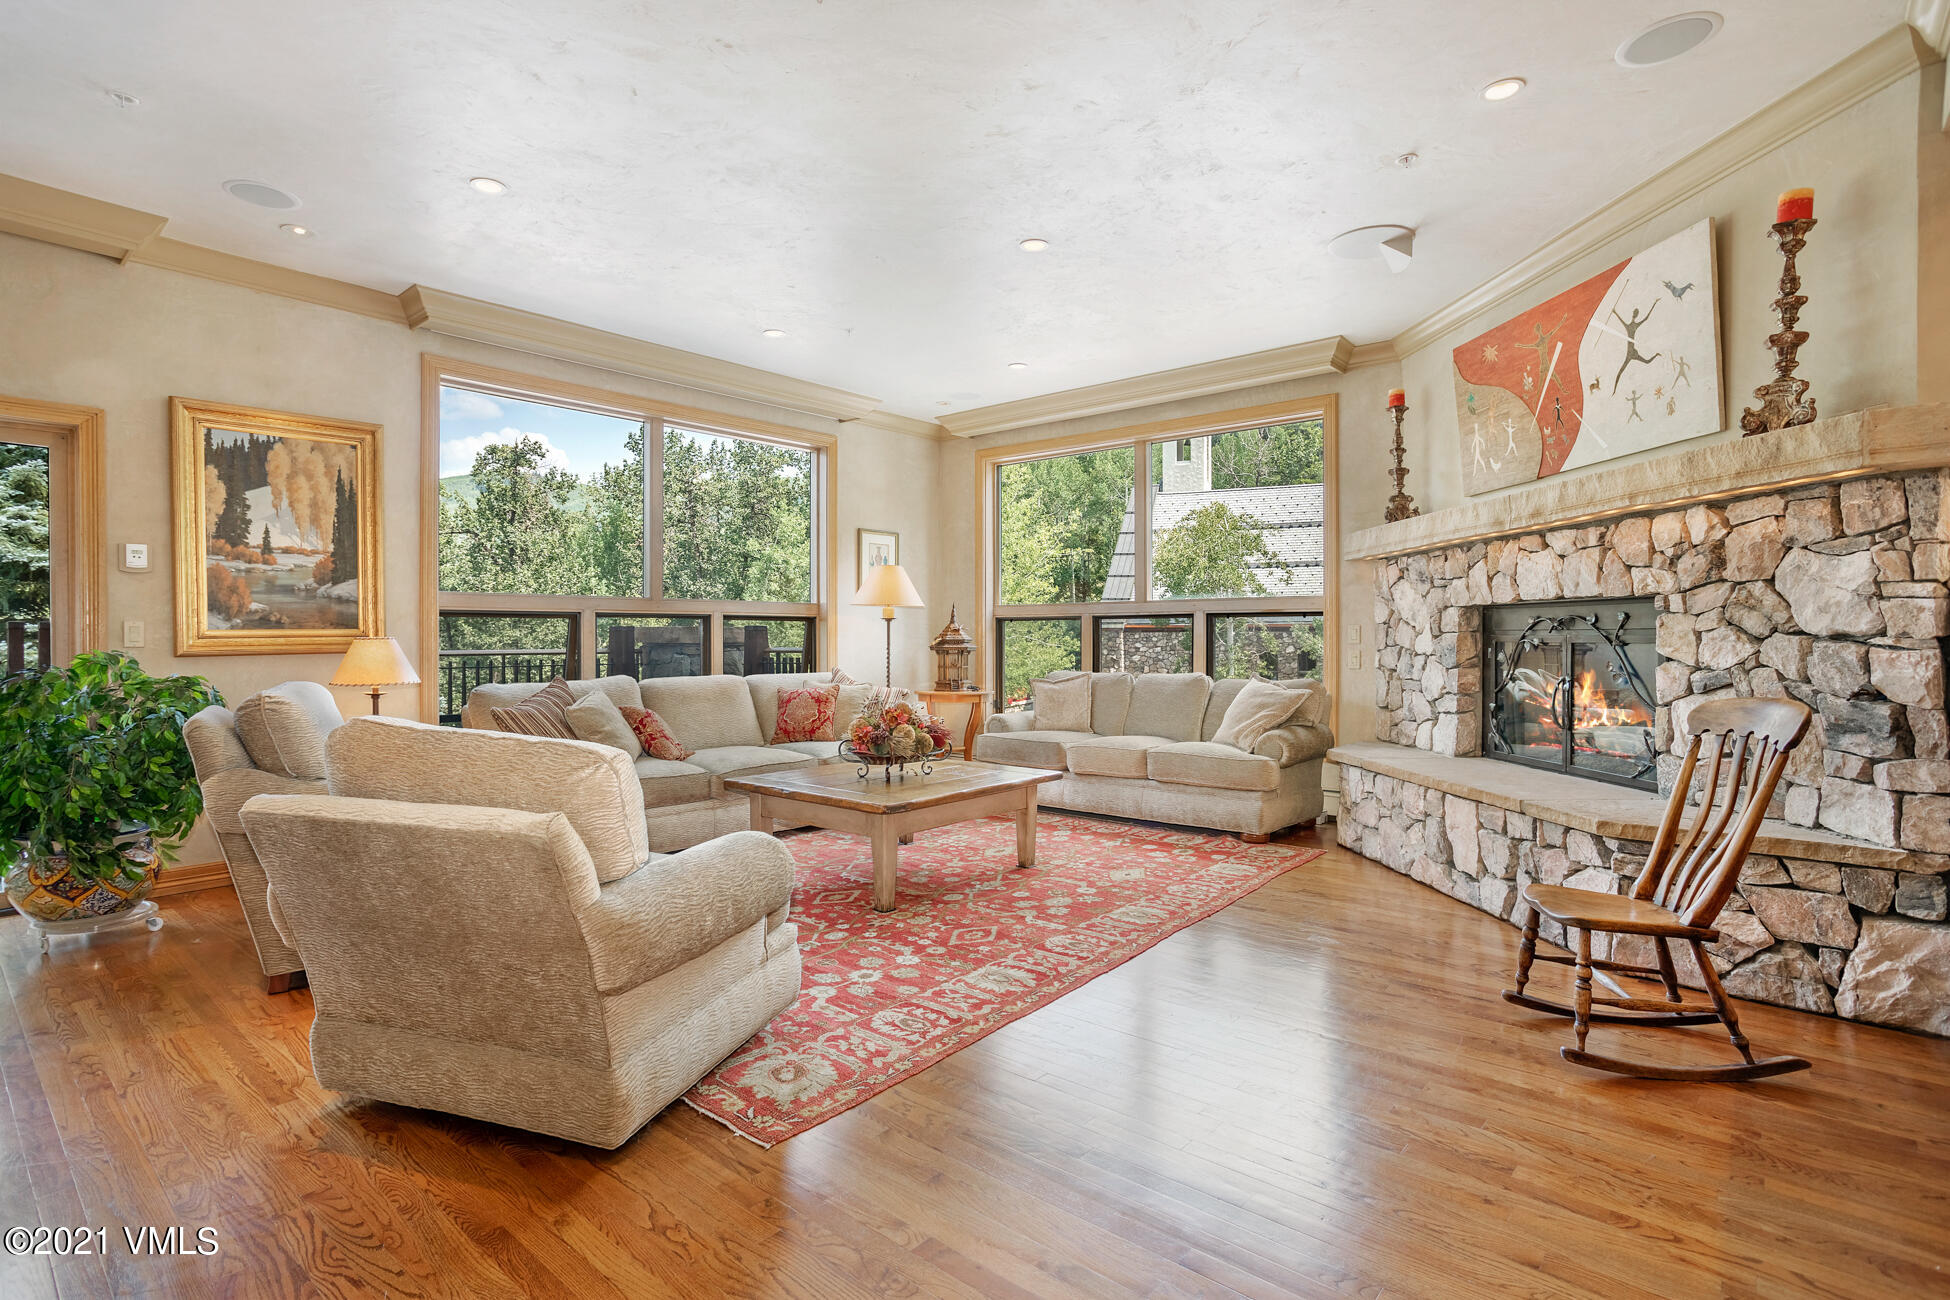 Resort living at its best! 5 bedrooms to accommodate family and friends with an enviable ski in and out location PLUS an attached 2 car garage! This home offers easy walking to everything within the resort core: the Beaver Creek Club, Strawberry Park Chairlift, Vilar Center, Ski School, Nordic Center, Beaver Lake trailhead and amazing restaurants and shopping. Beautiful views and all en-suite bedrooms make this the perfect resort home. Owners have full use of the Osprey Resort including outdoor heated pool, hot tub, fire-pit, fitness center and steam. Pamper yourself!